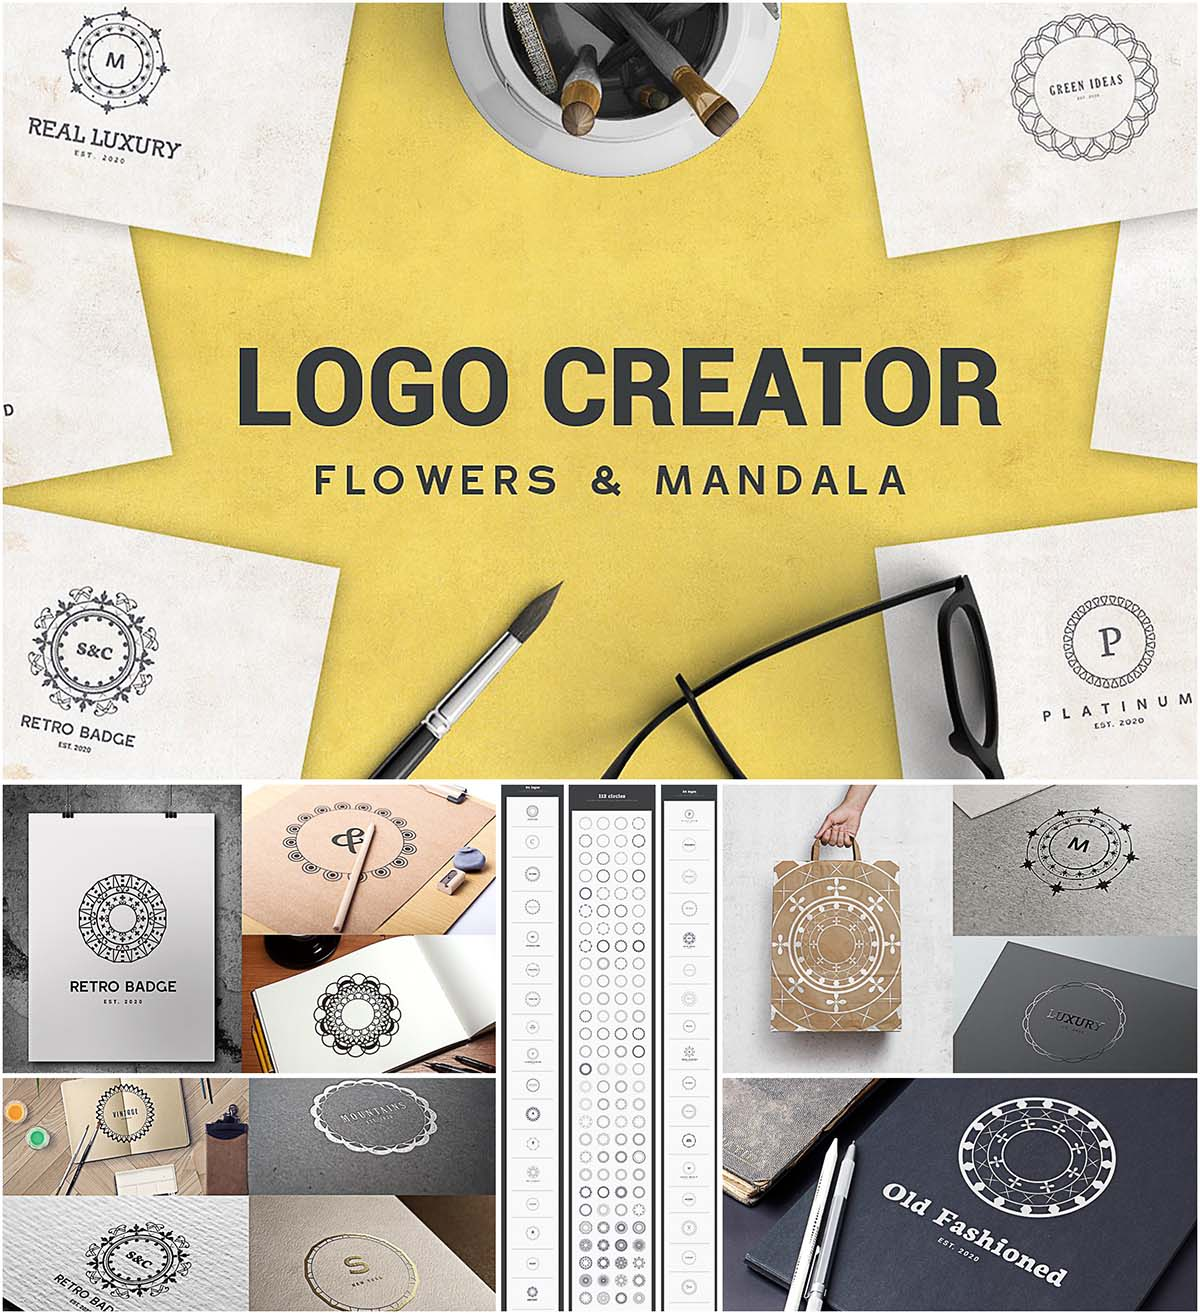 Logo creator flowers and mandala